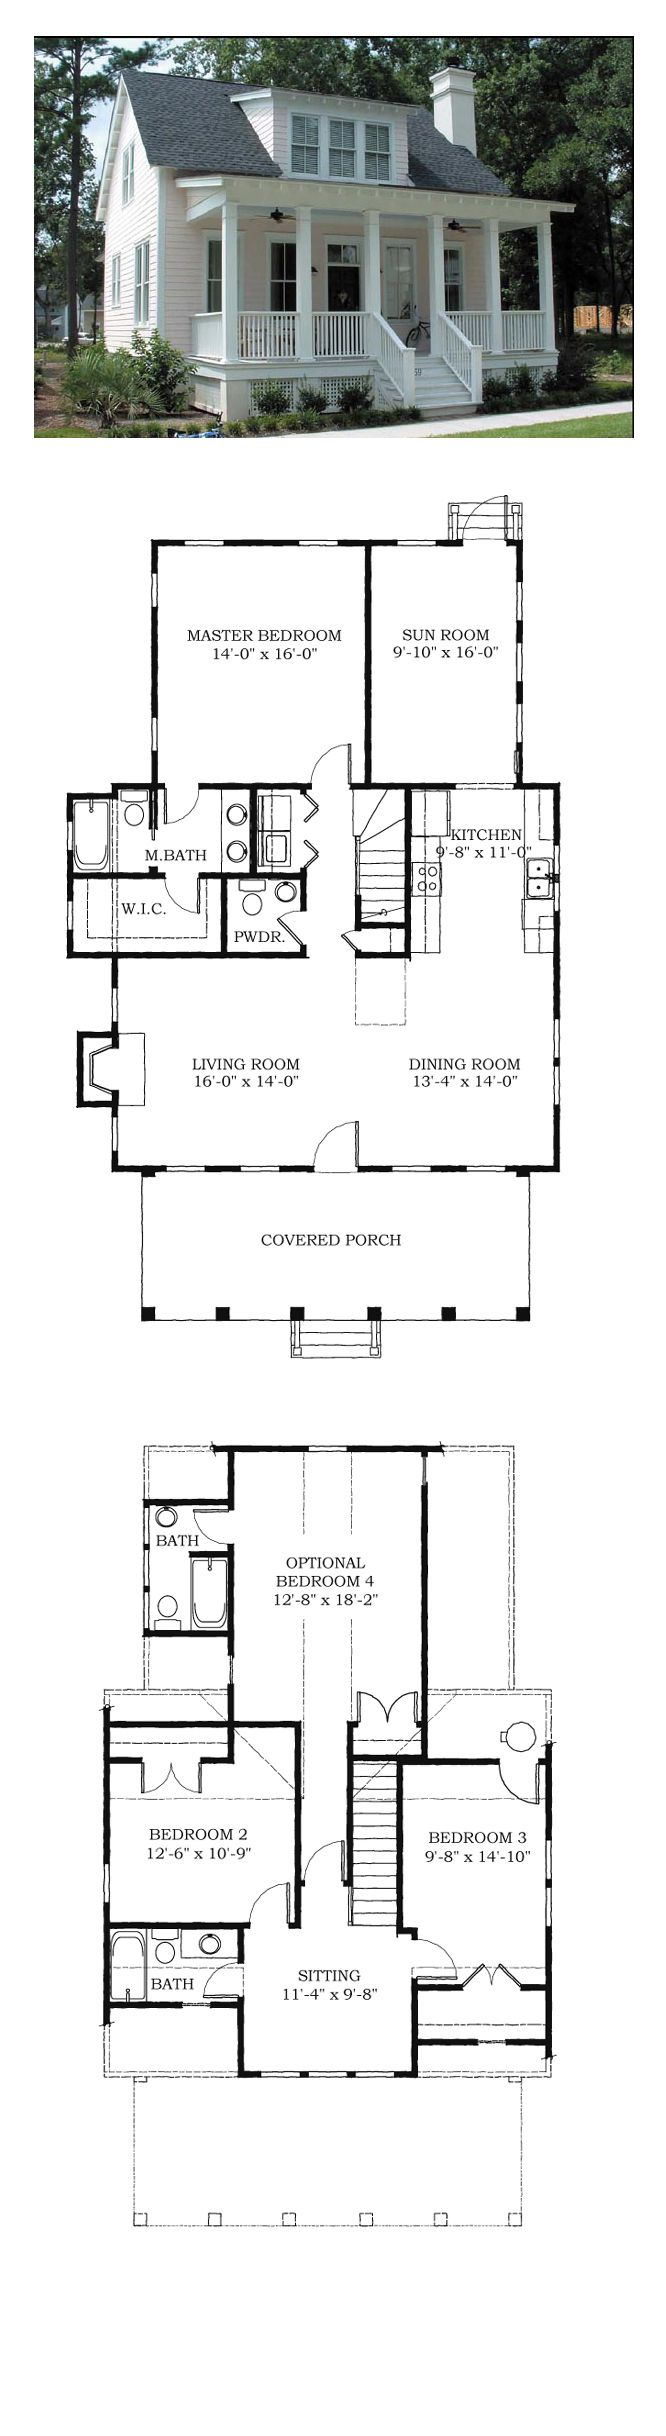 COOL House Plan ID chp 38703 Total